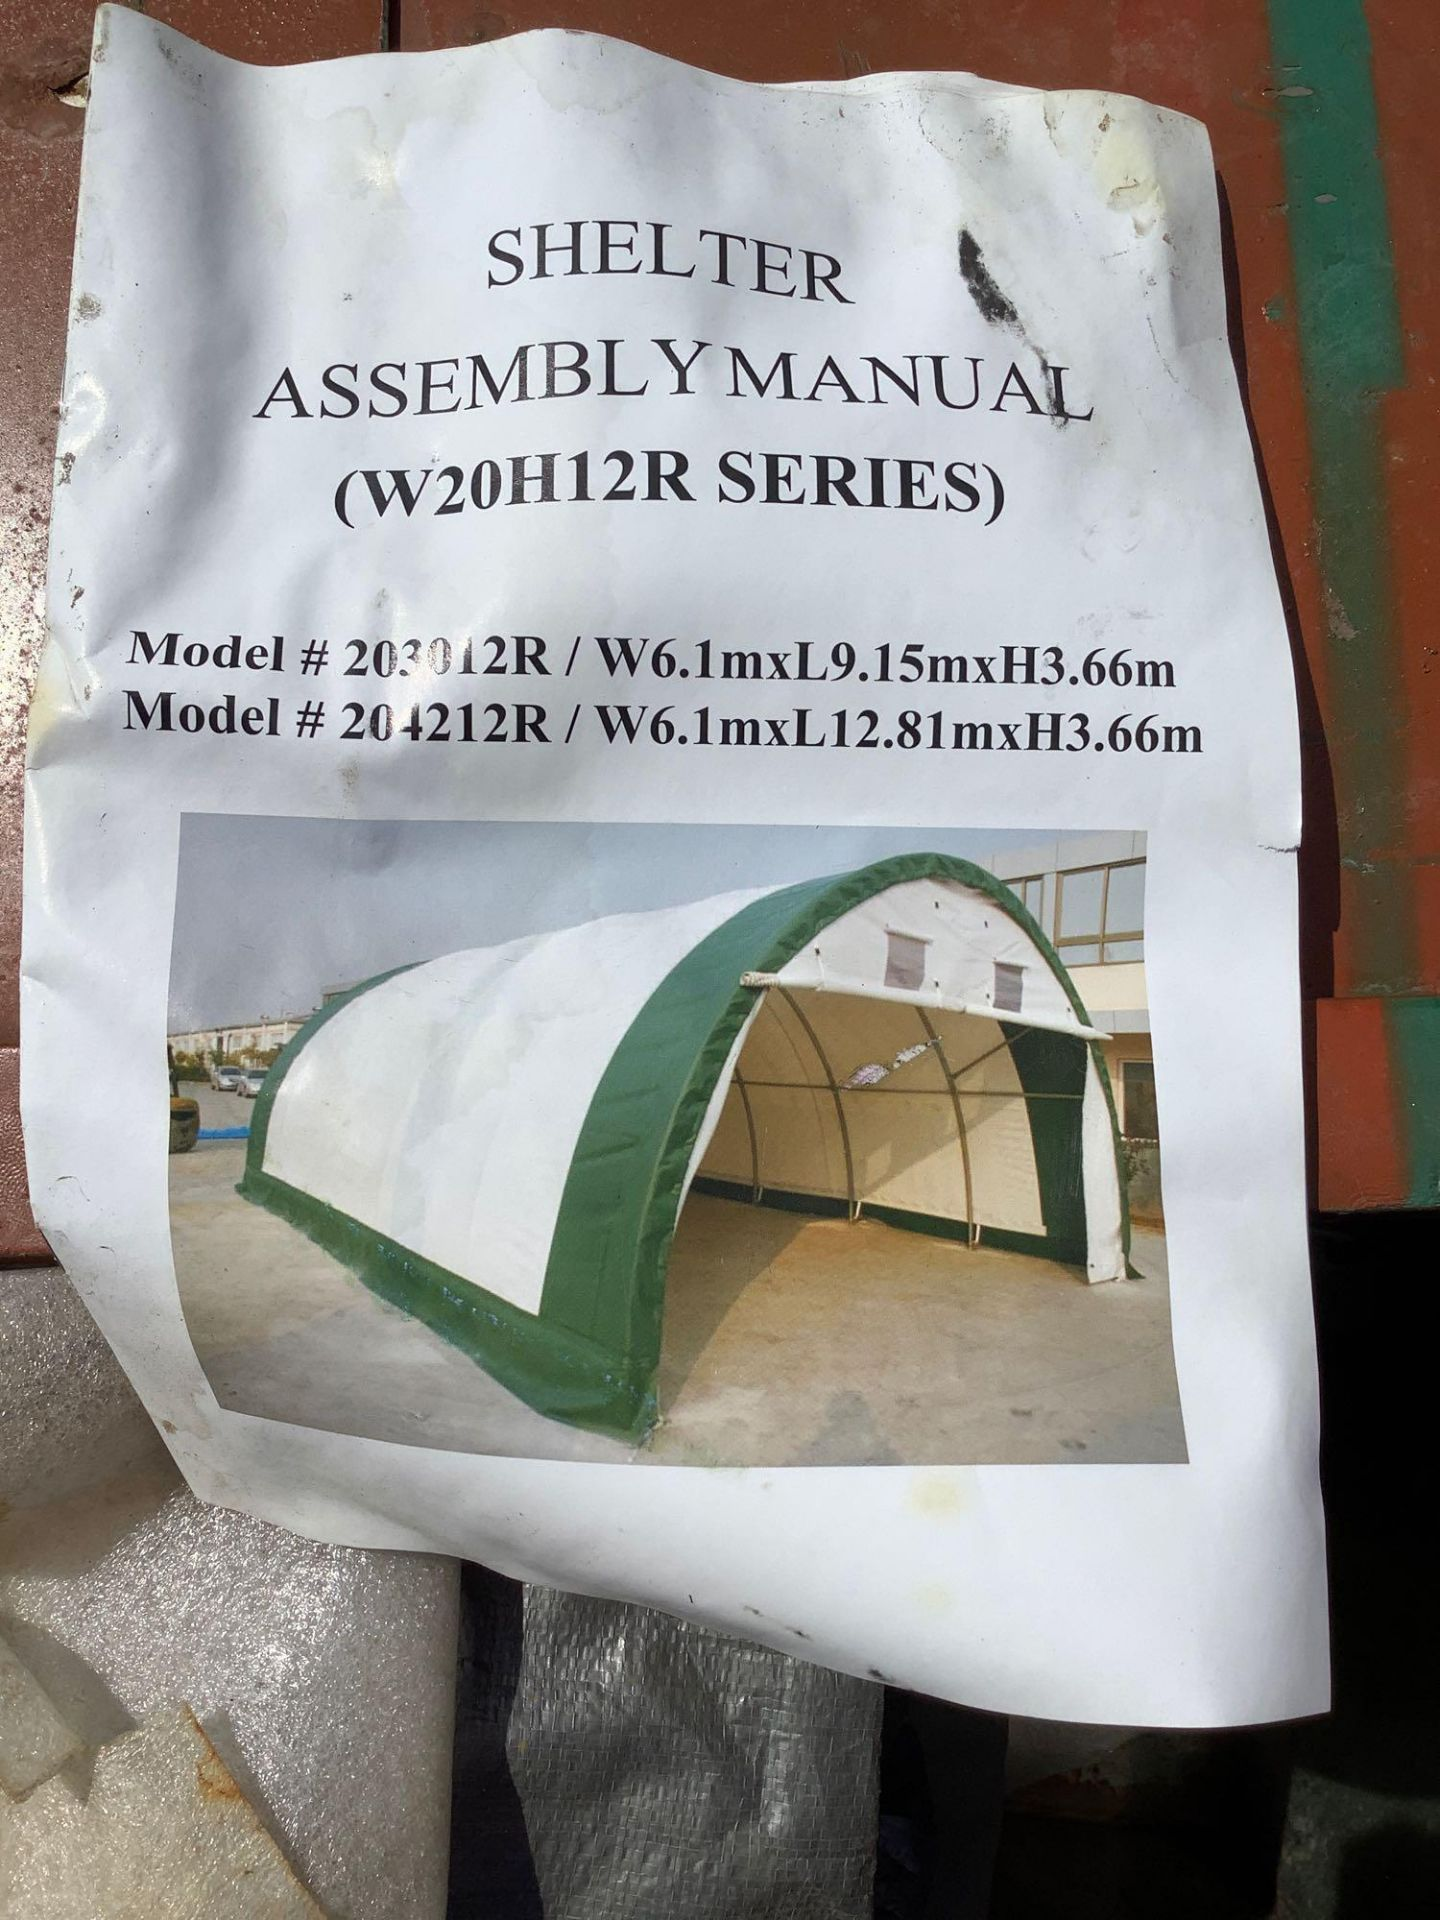 GOLD MOUNTAIN BUILDING TENT , APPROX 30 FT x 20 FT x 12 FT - Image 7 of 7